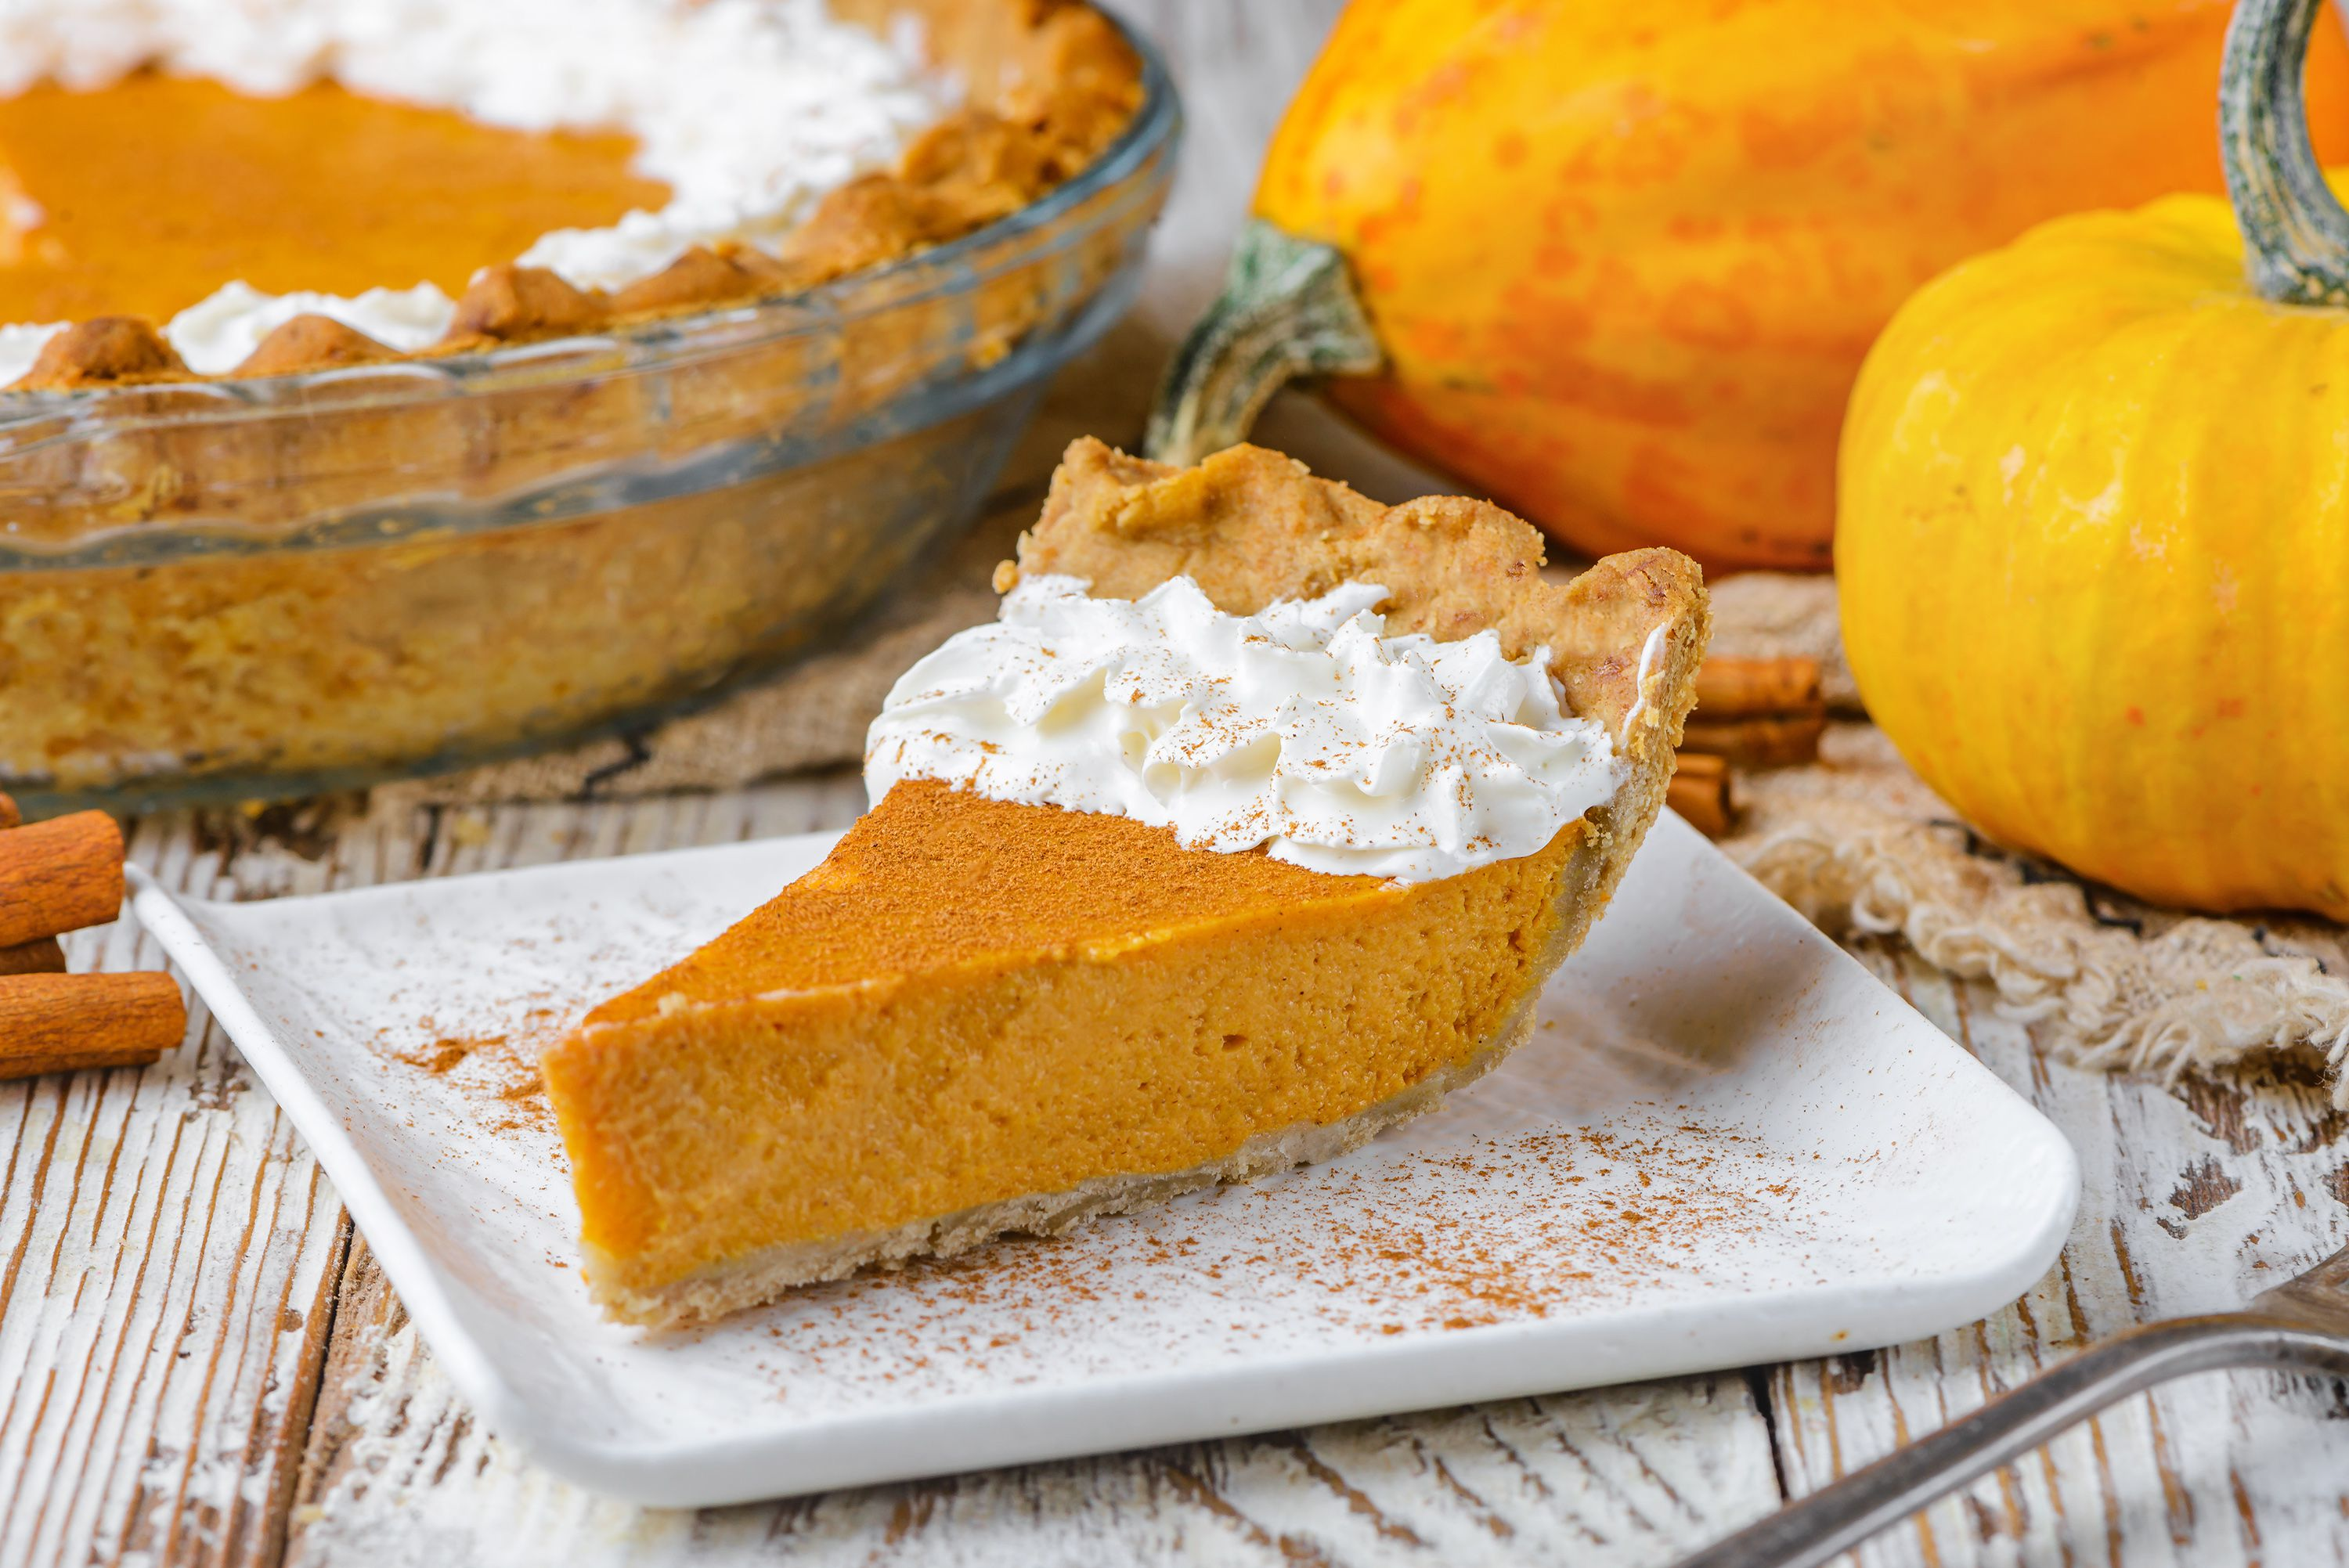 A Completely Gluten-Free Pumpkin Pie—It's Possible and It's Delicious!